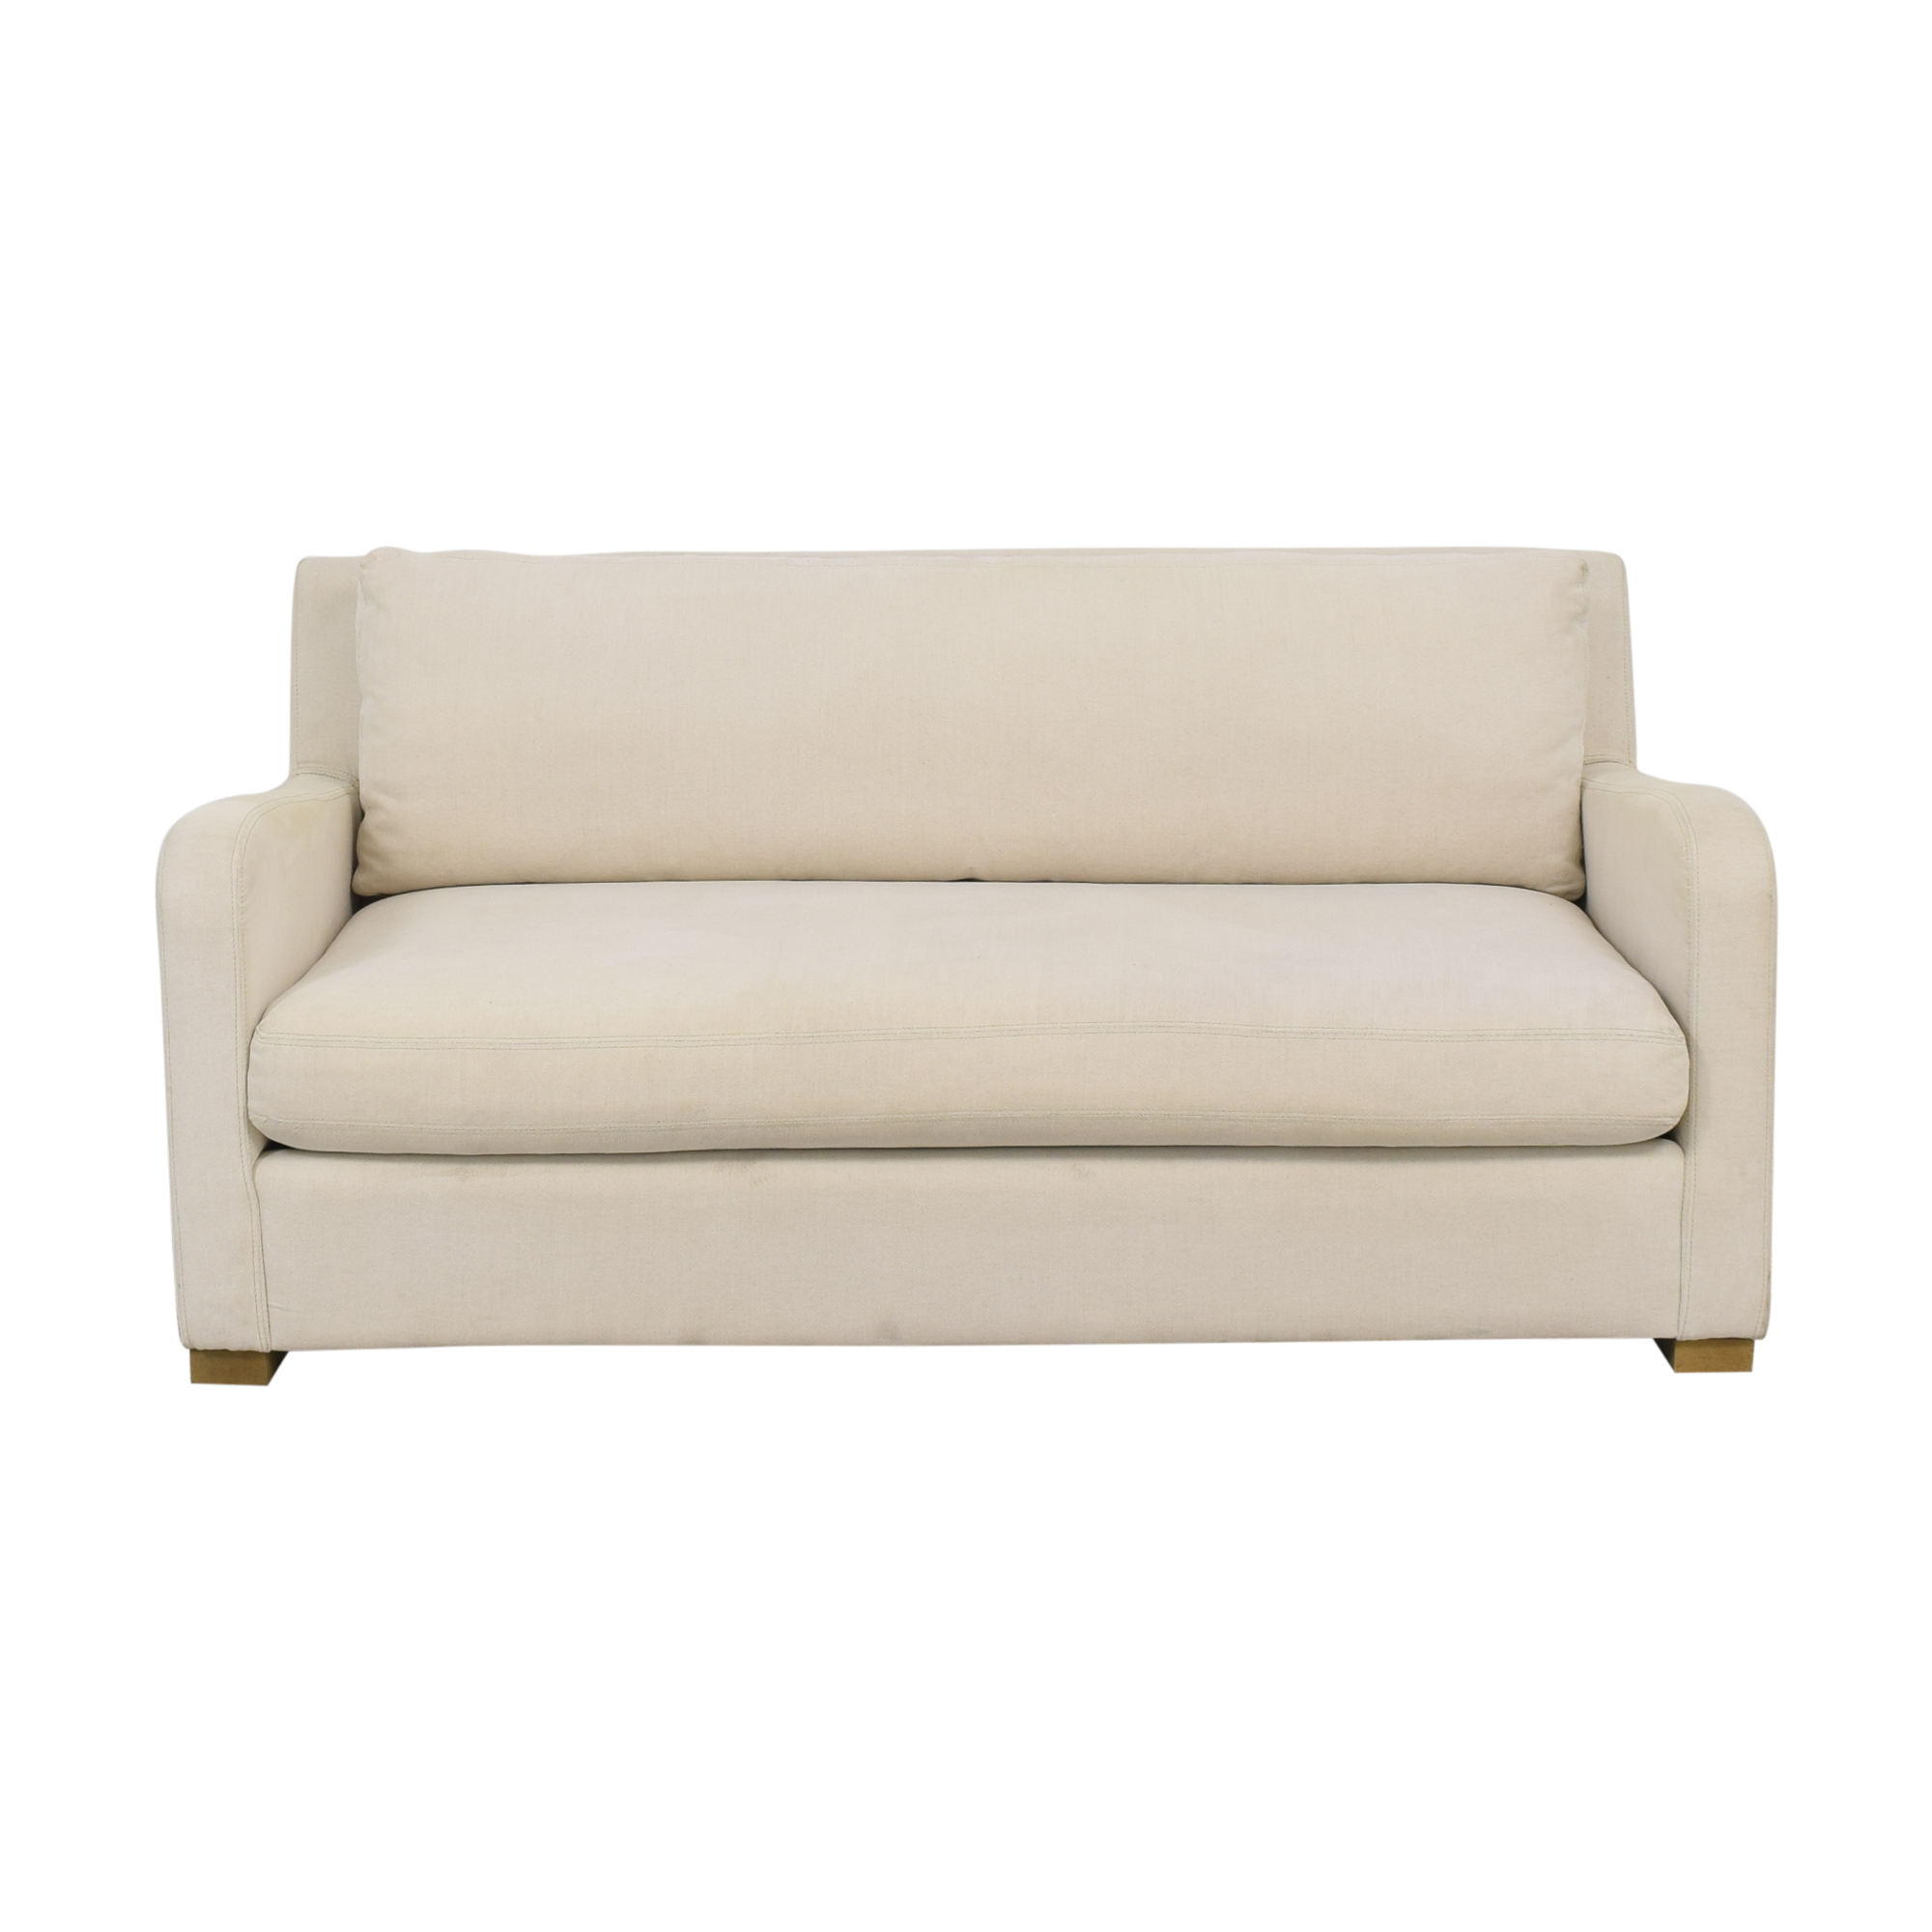 Restoration Hardware Restoration Hardware Belgian Slope Arm Sofa price